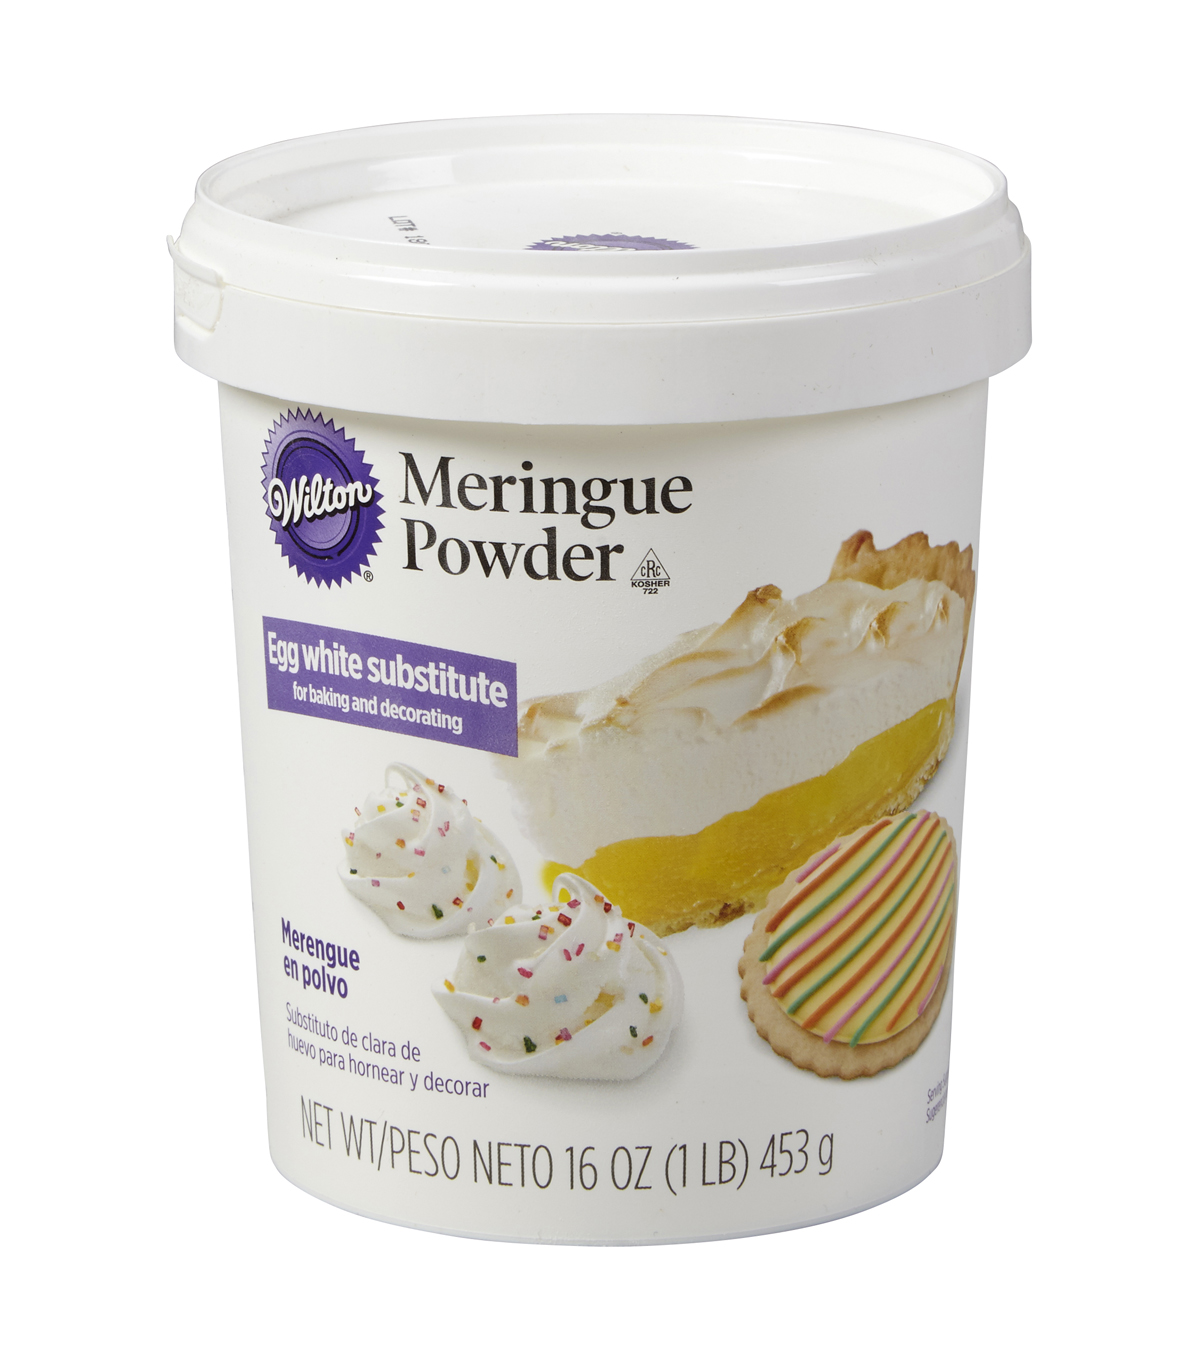 Wilton 16 Oz Meringue Powder                      Wilton 16 Oz Meringue Powder by Wilton